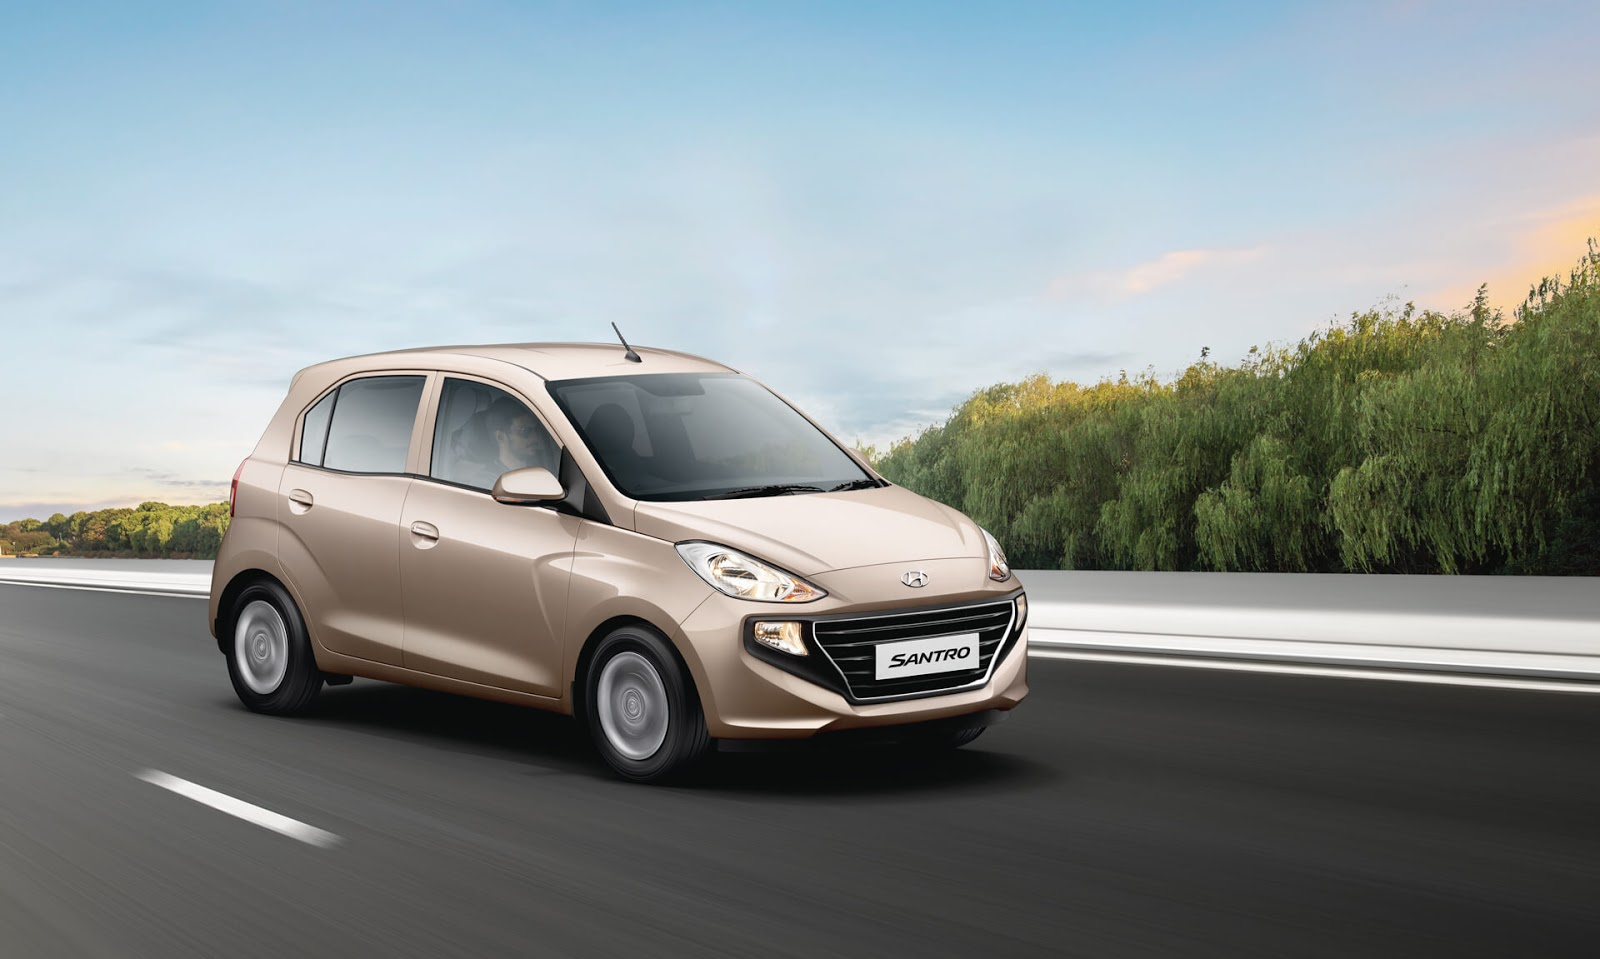 Hyundai Santro review